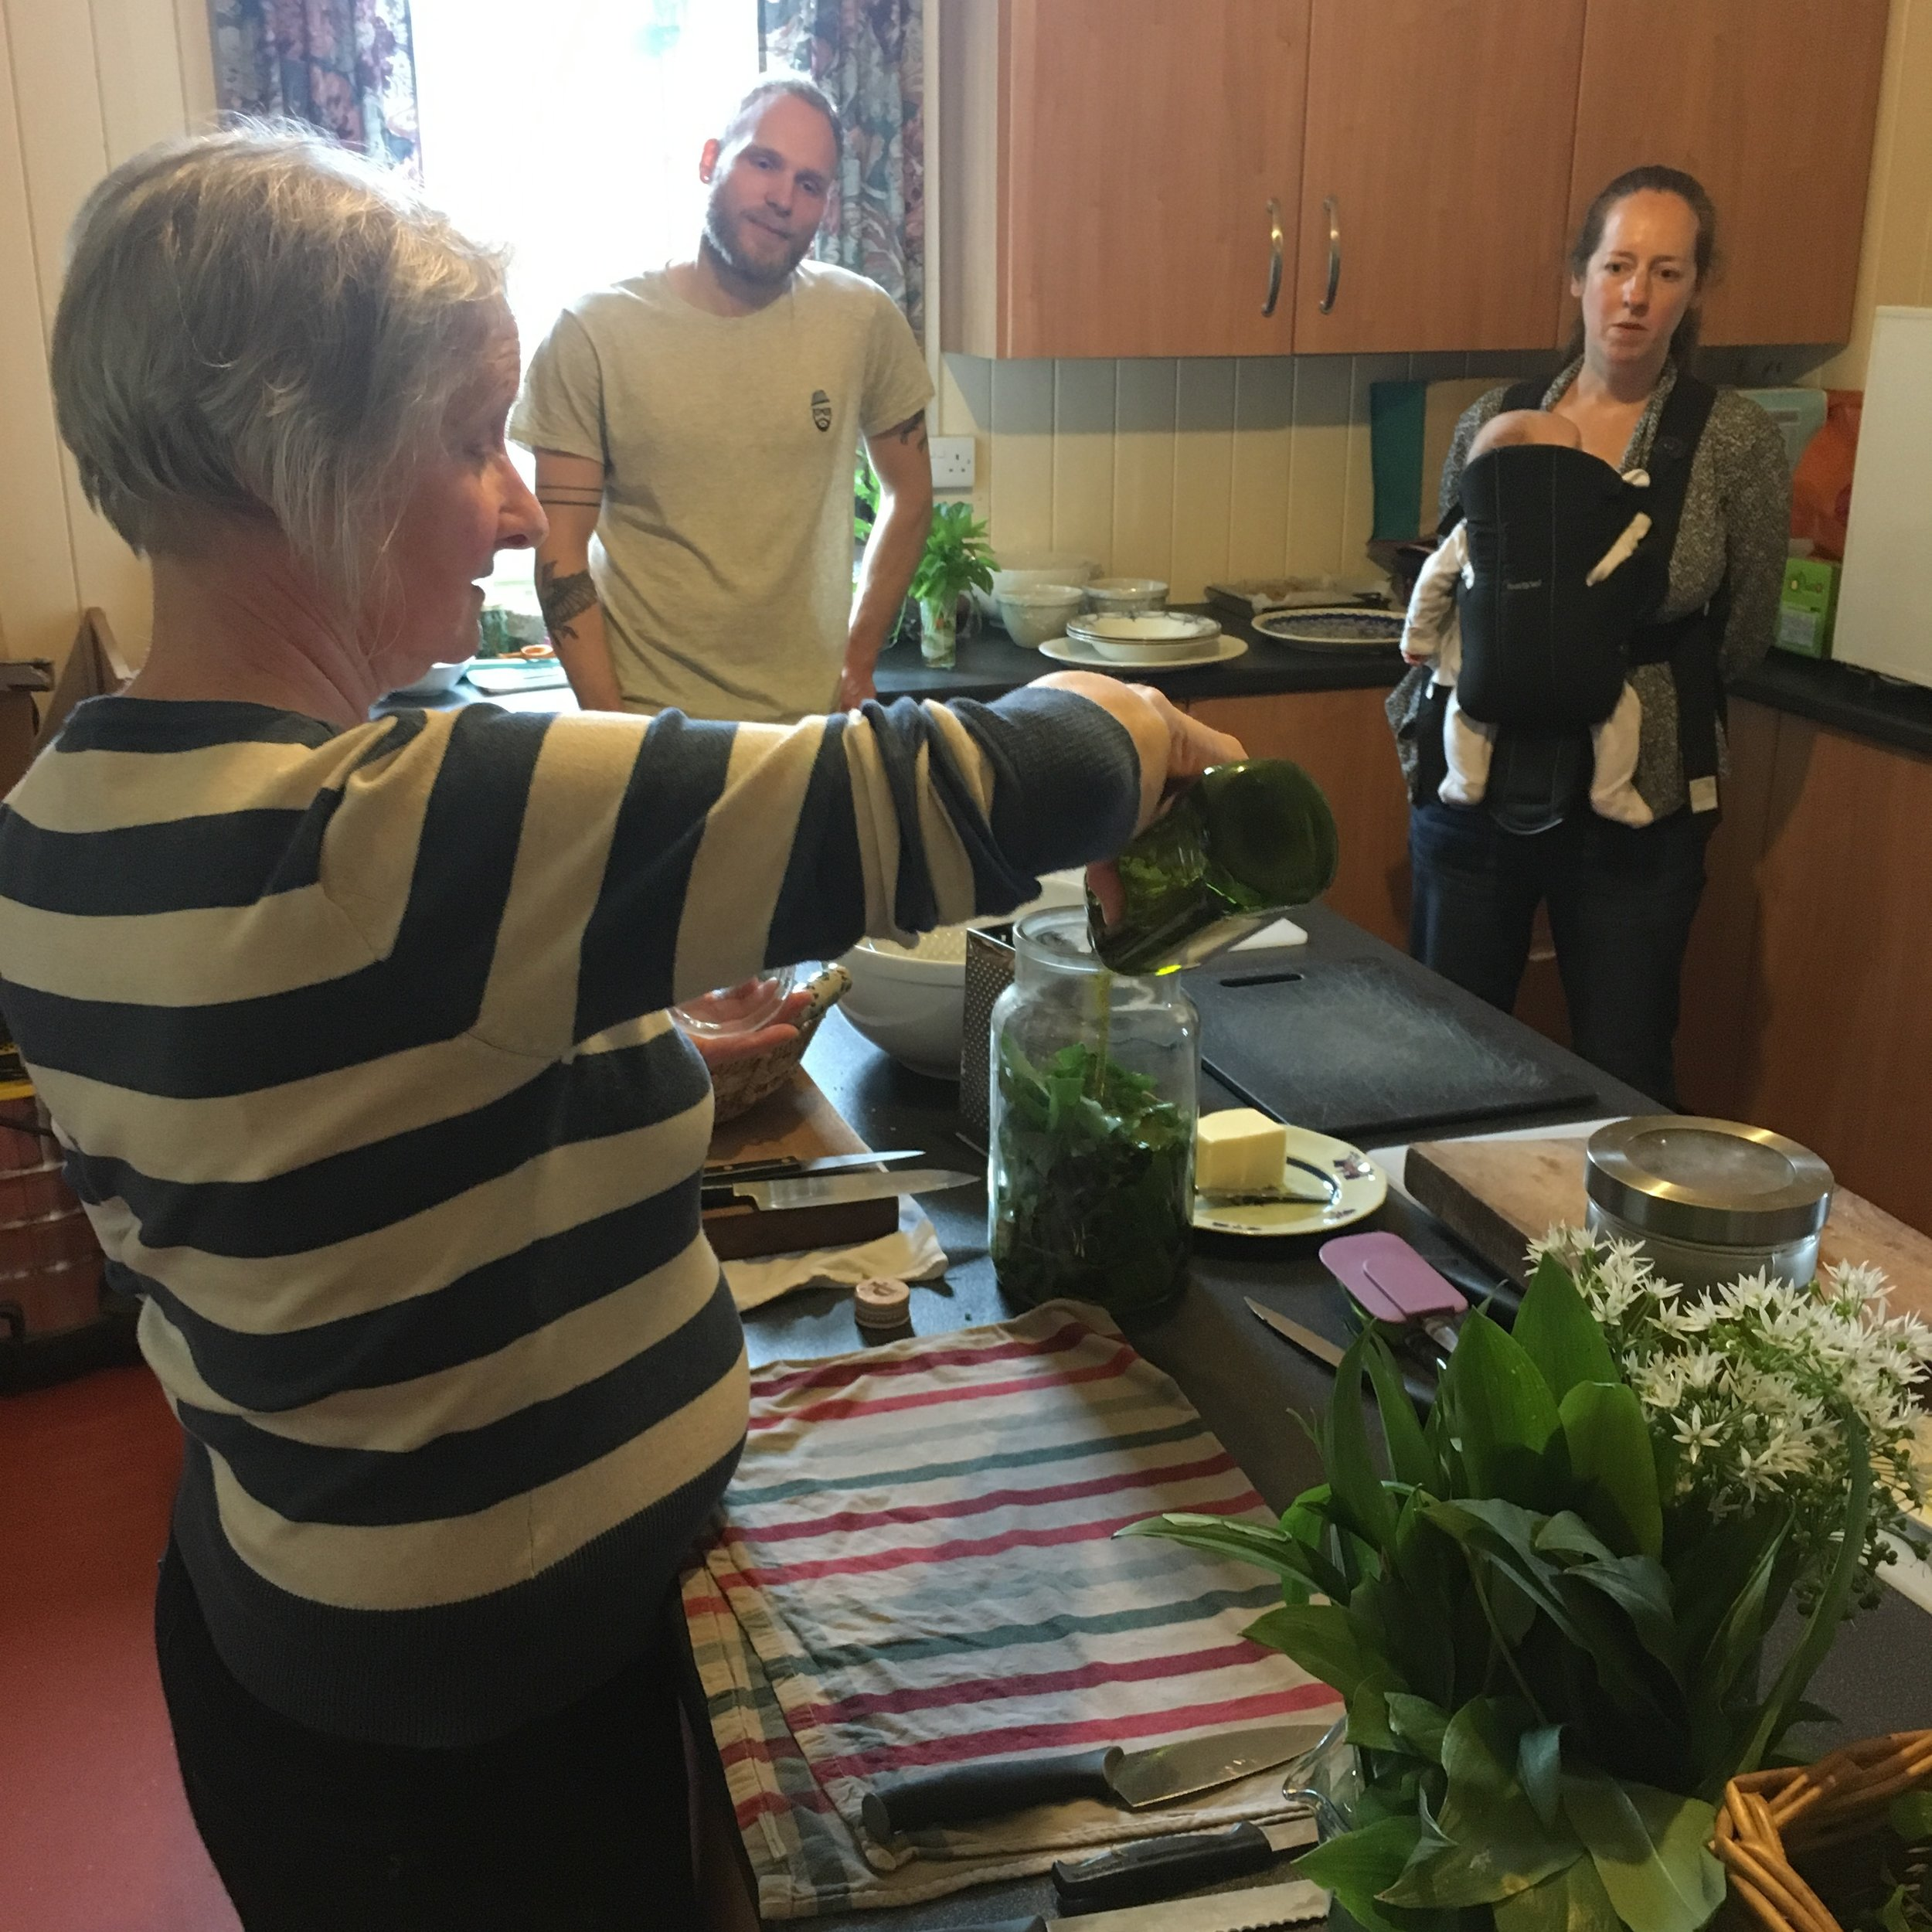 Gill Evans showing us how to transform our wild haul into delicious food.